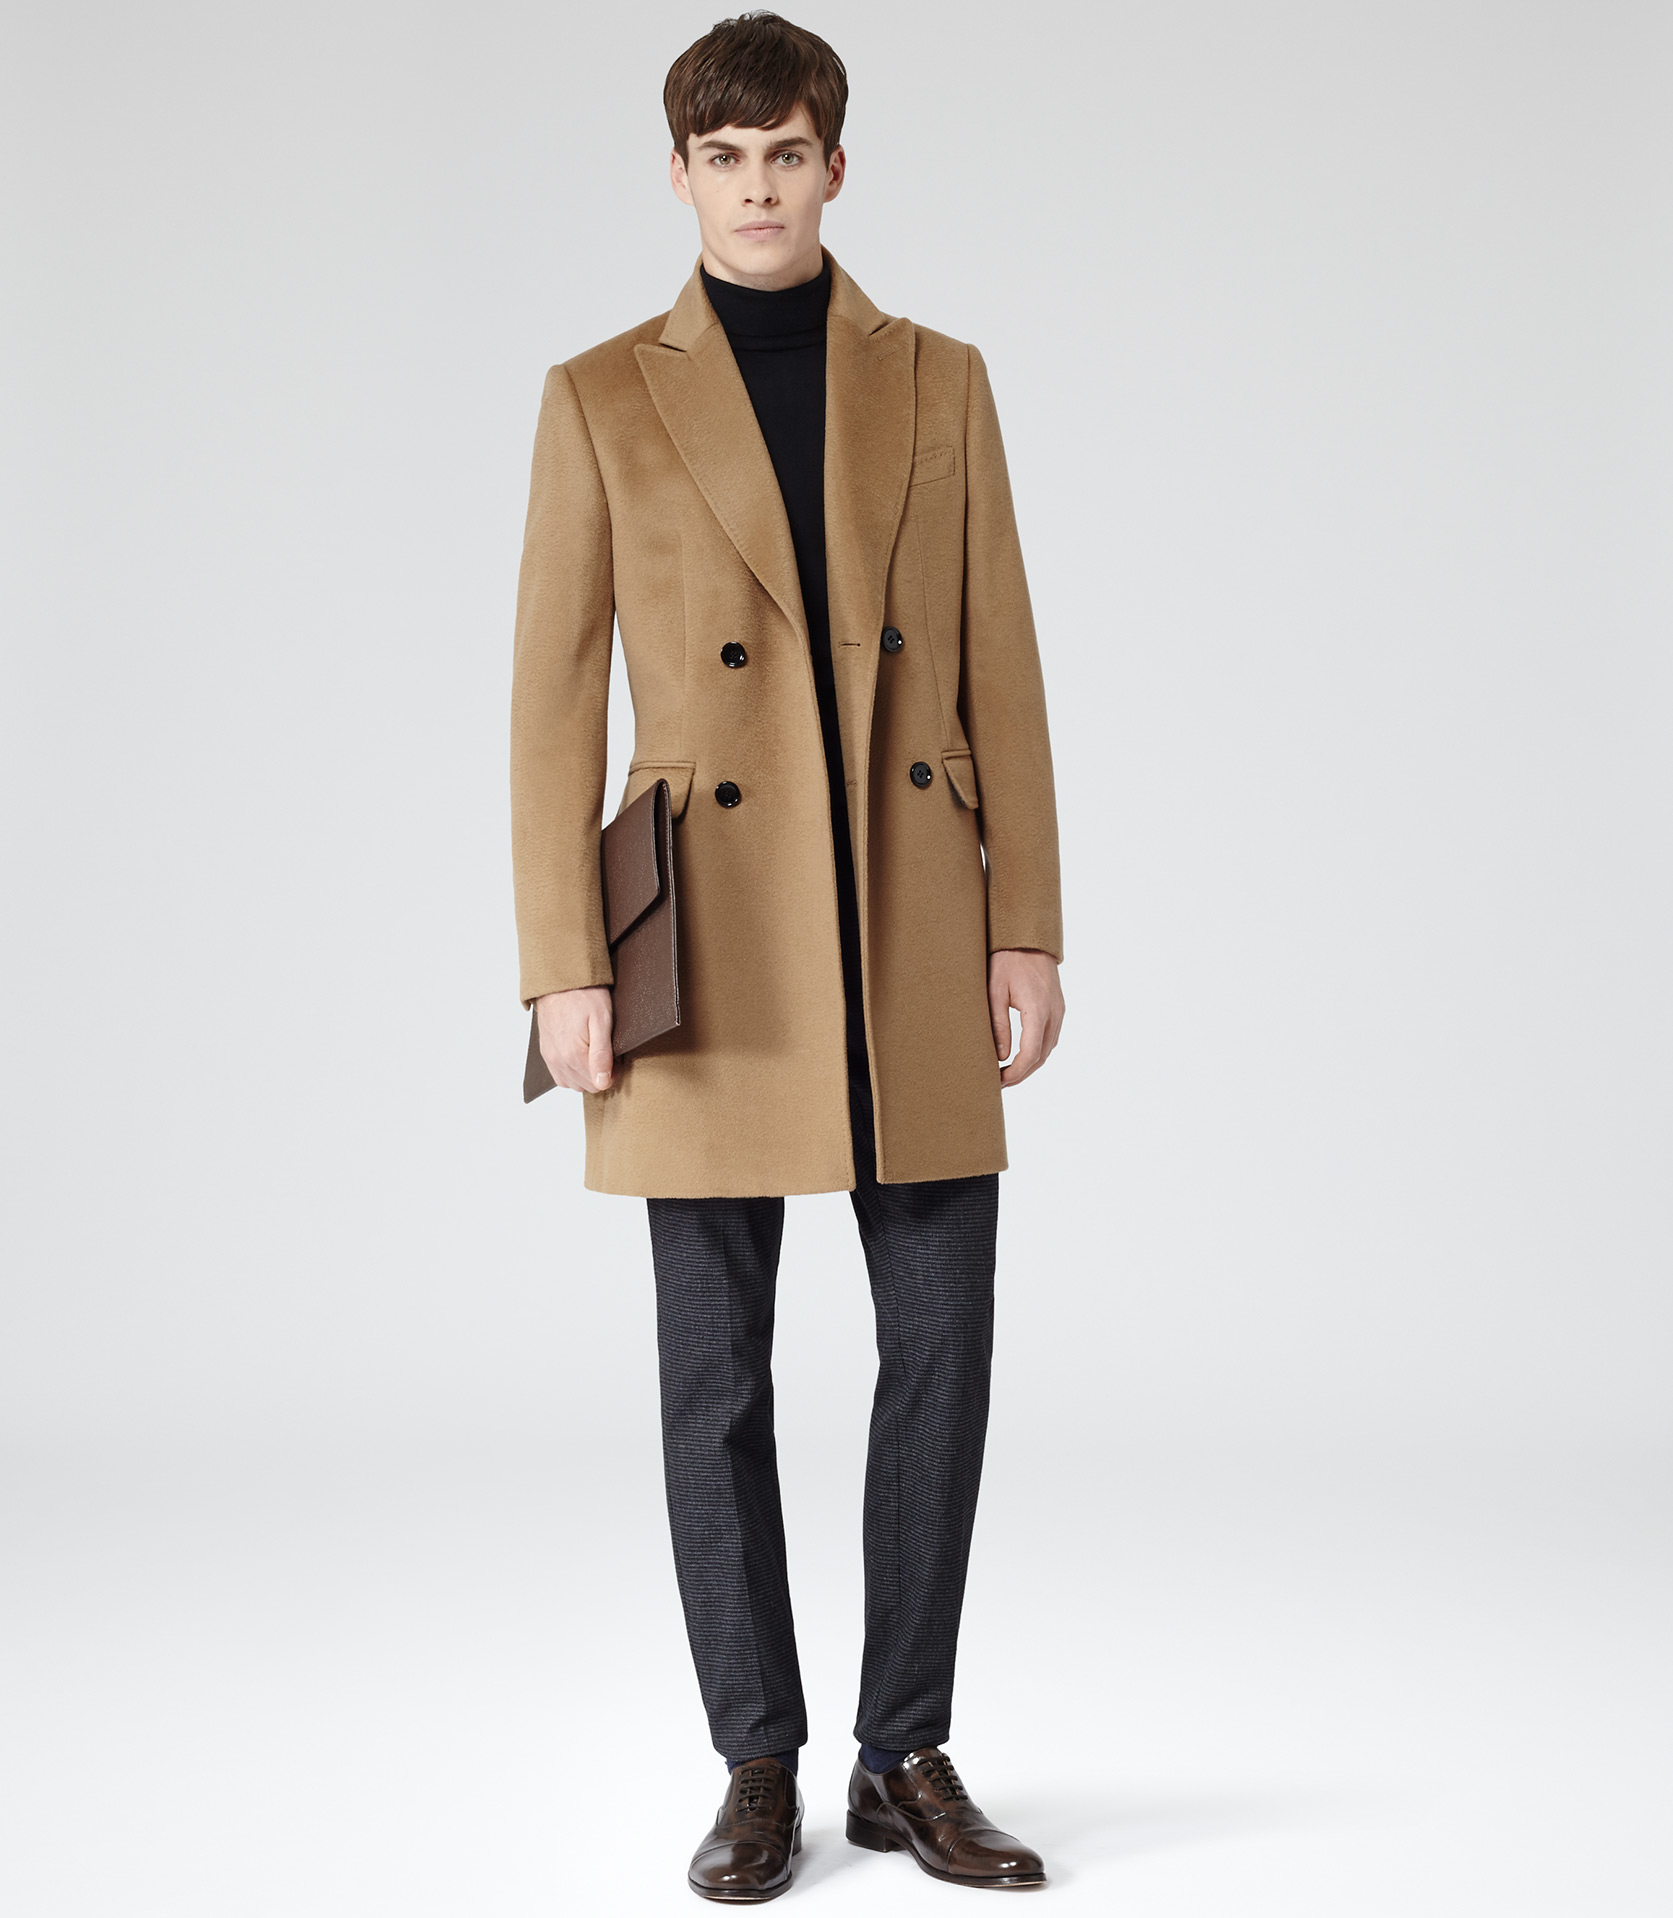 Reiss Kanye Double Breasted Coat Lapel In Camel Brown